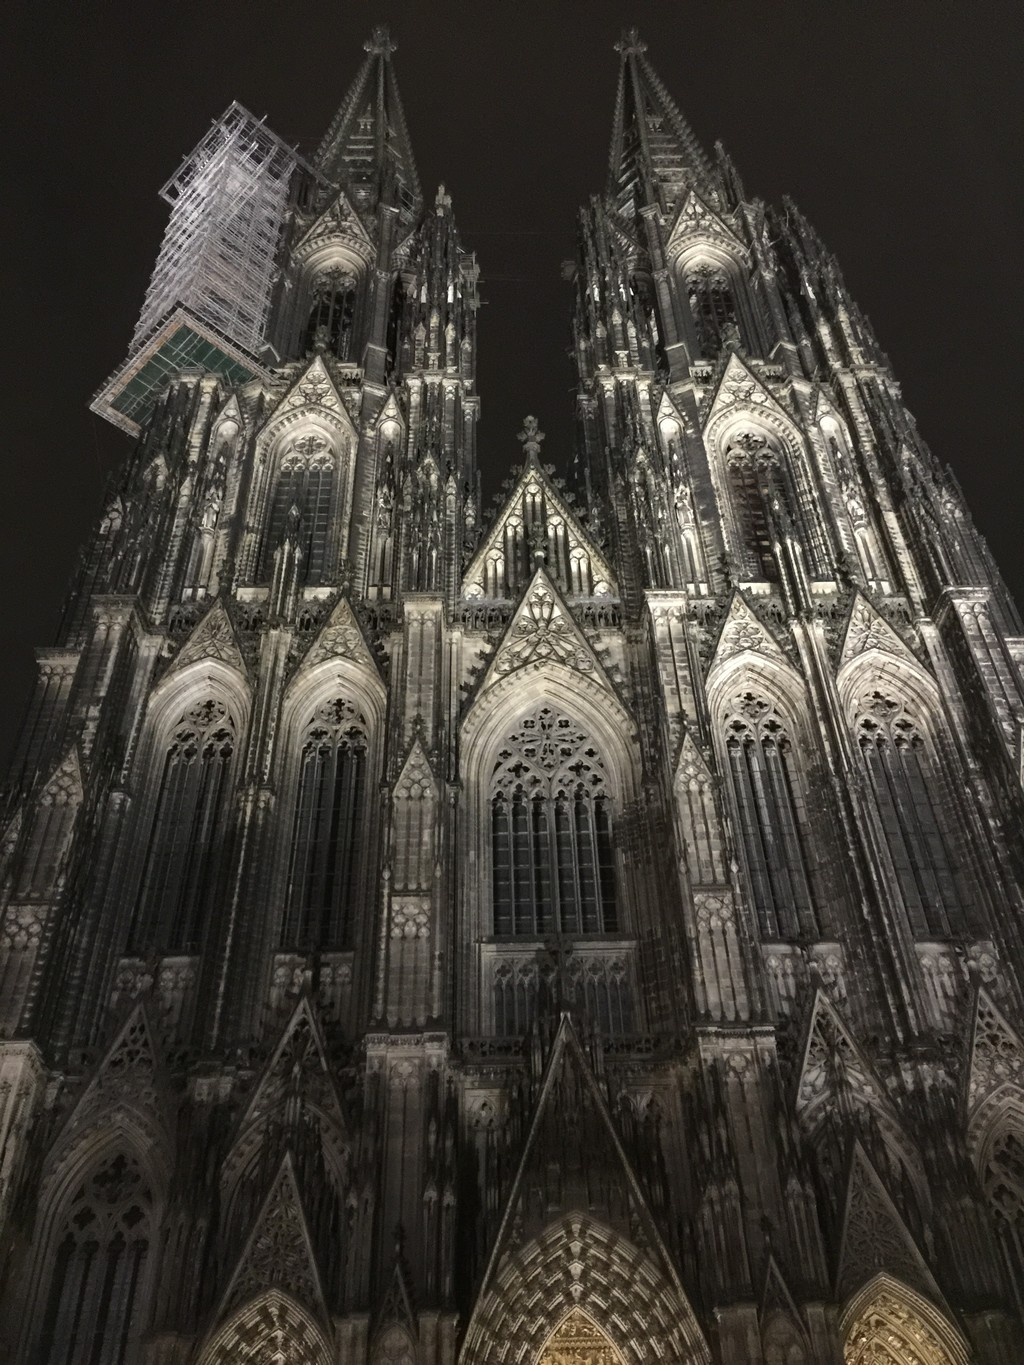 Kölner Dom, the Cathedral of Cologne